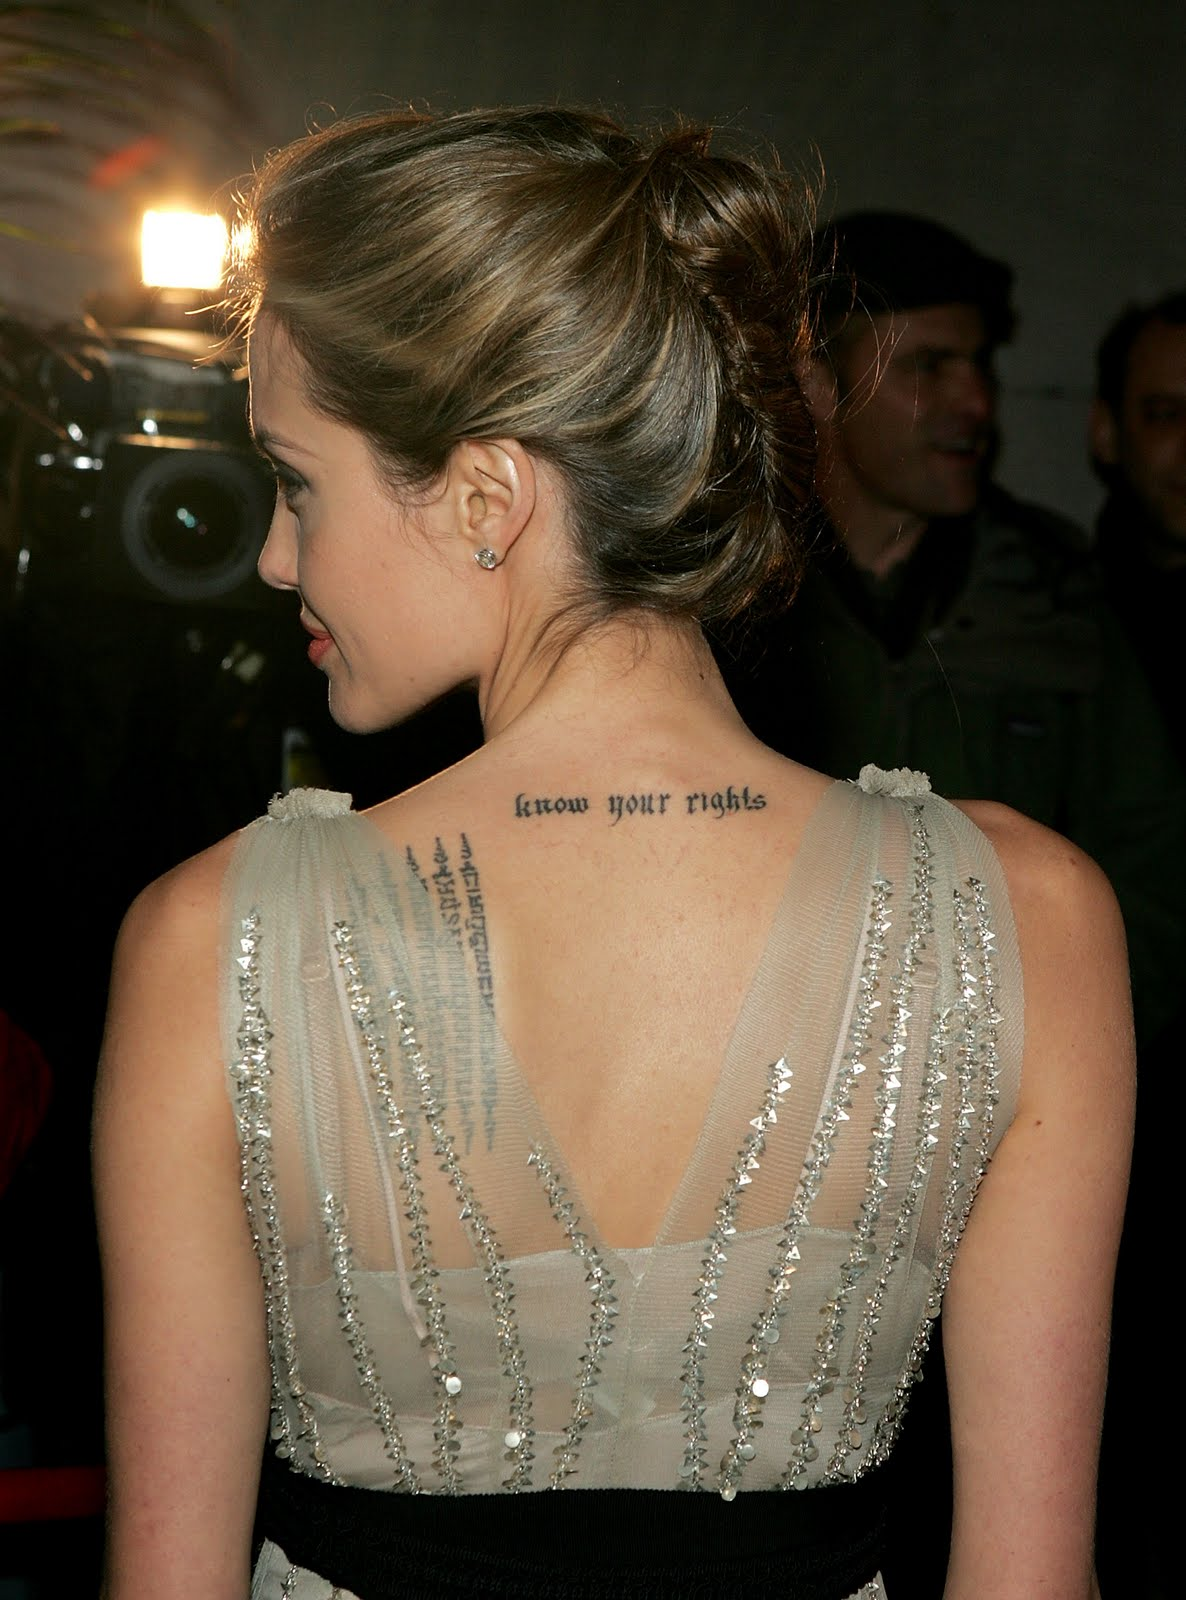 Know Your Rights Back Neck Tattoo